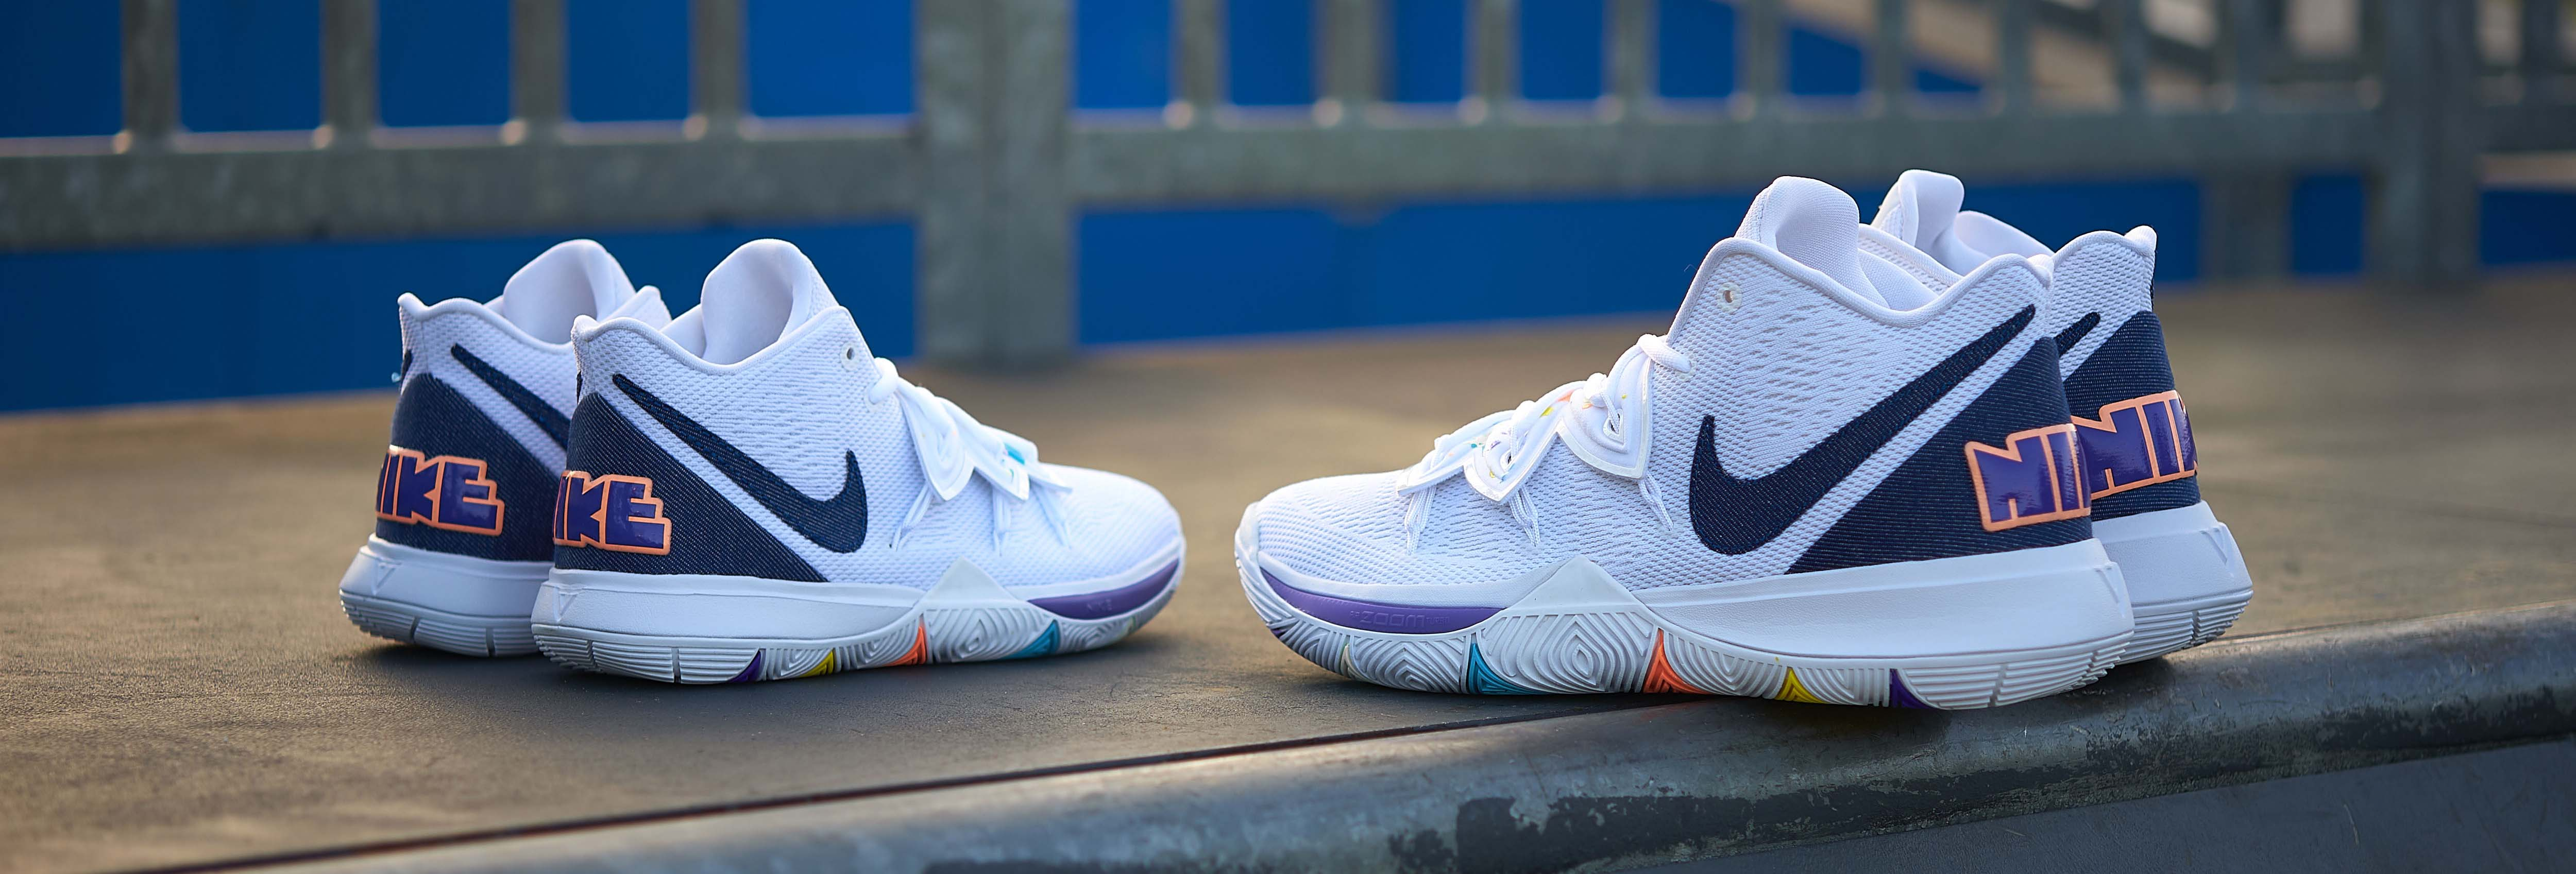 Have a Nike Day with the latest Kyrie 5